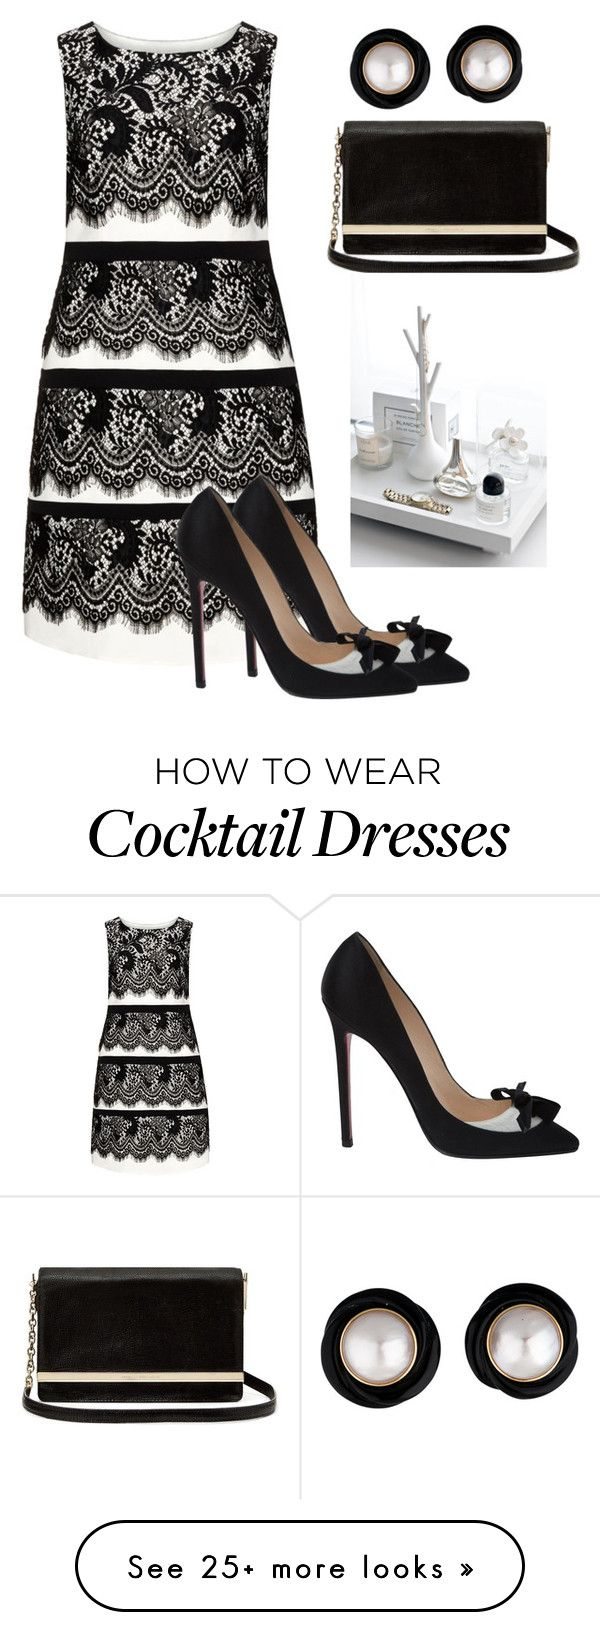 """Black & White"" by naviaux on Polyvore featuring Gina Bacconi, Christian Louboutin and Diane Von Furstenberg"